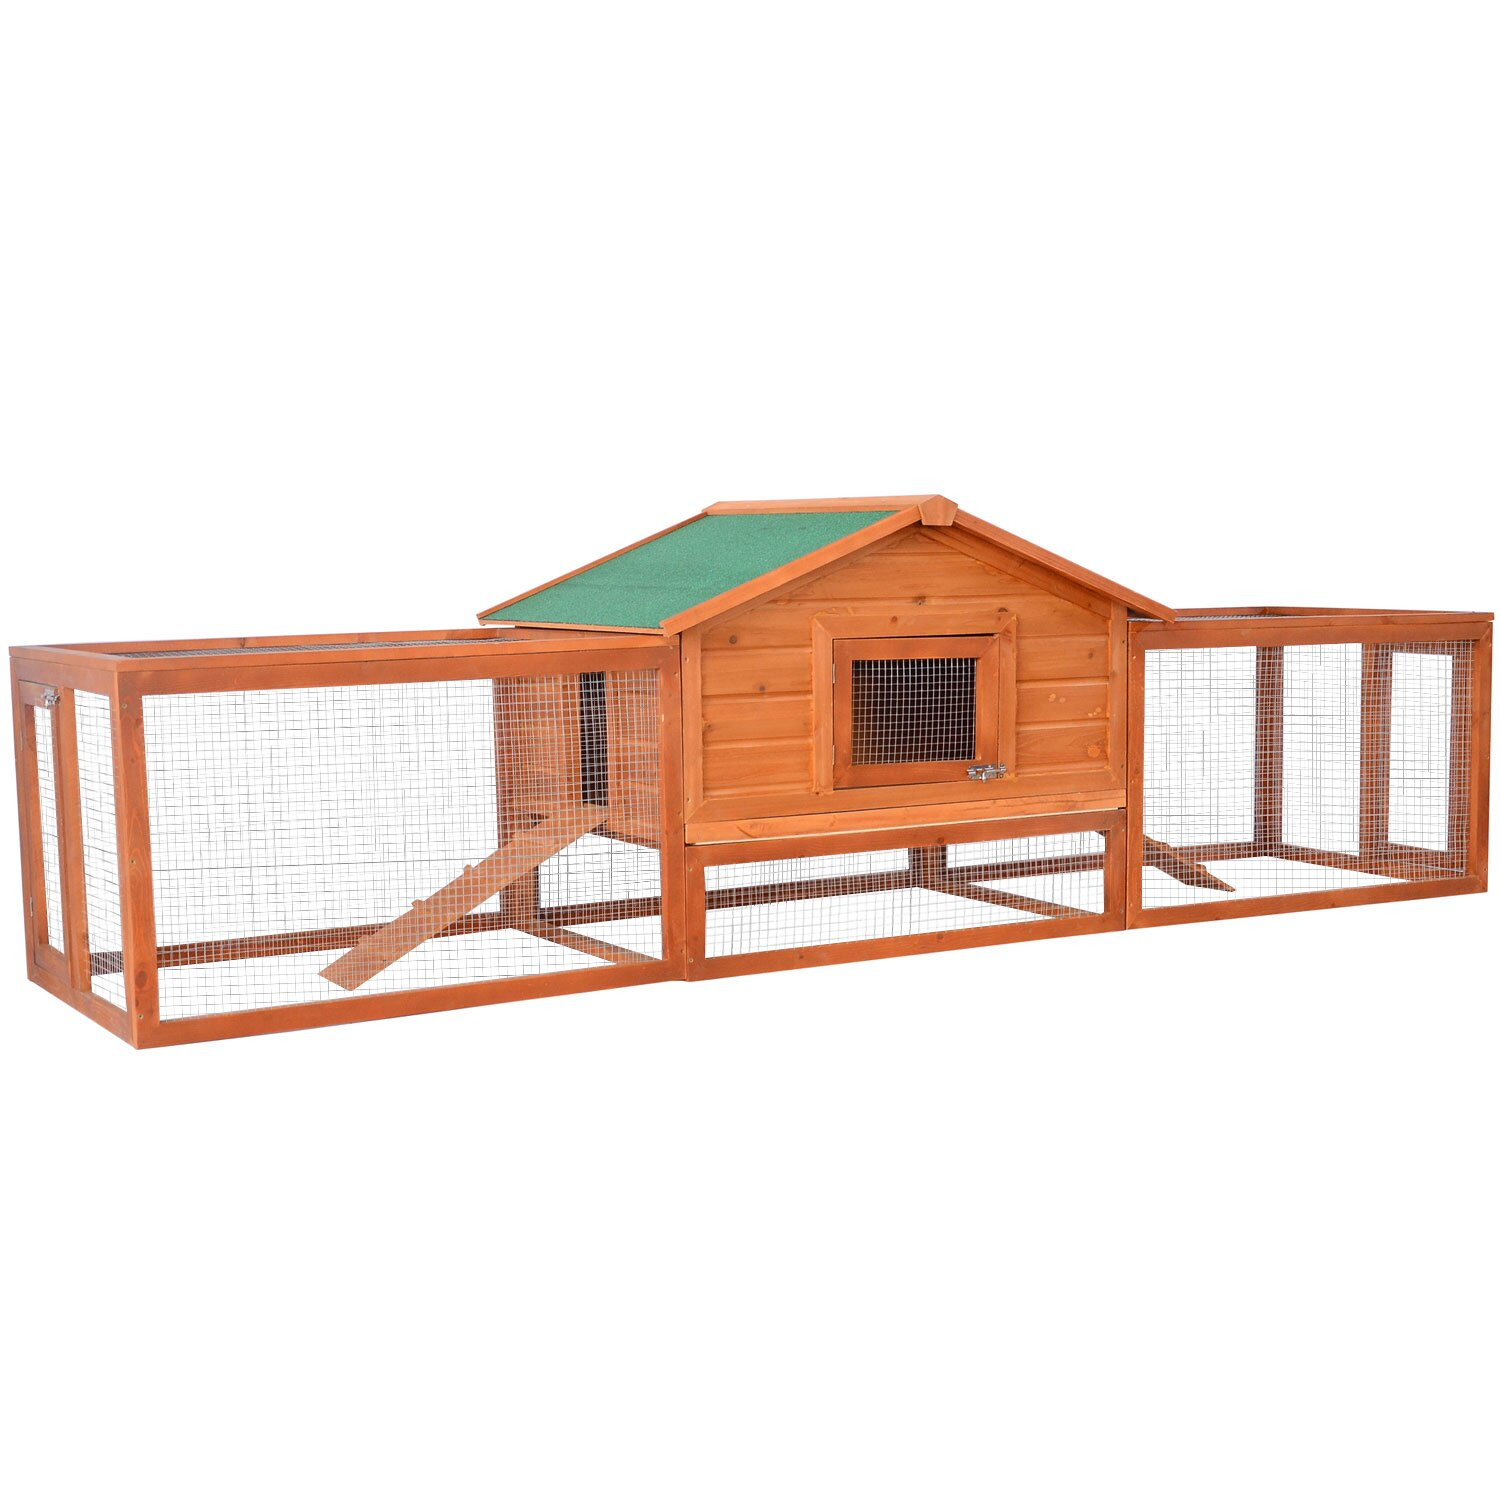 Pawhut pawhut deluxe rabbit hutch chicken coop with double for Outdoor rabbit hutch kits